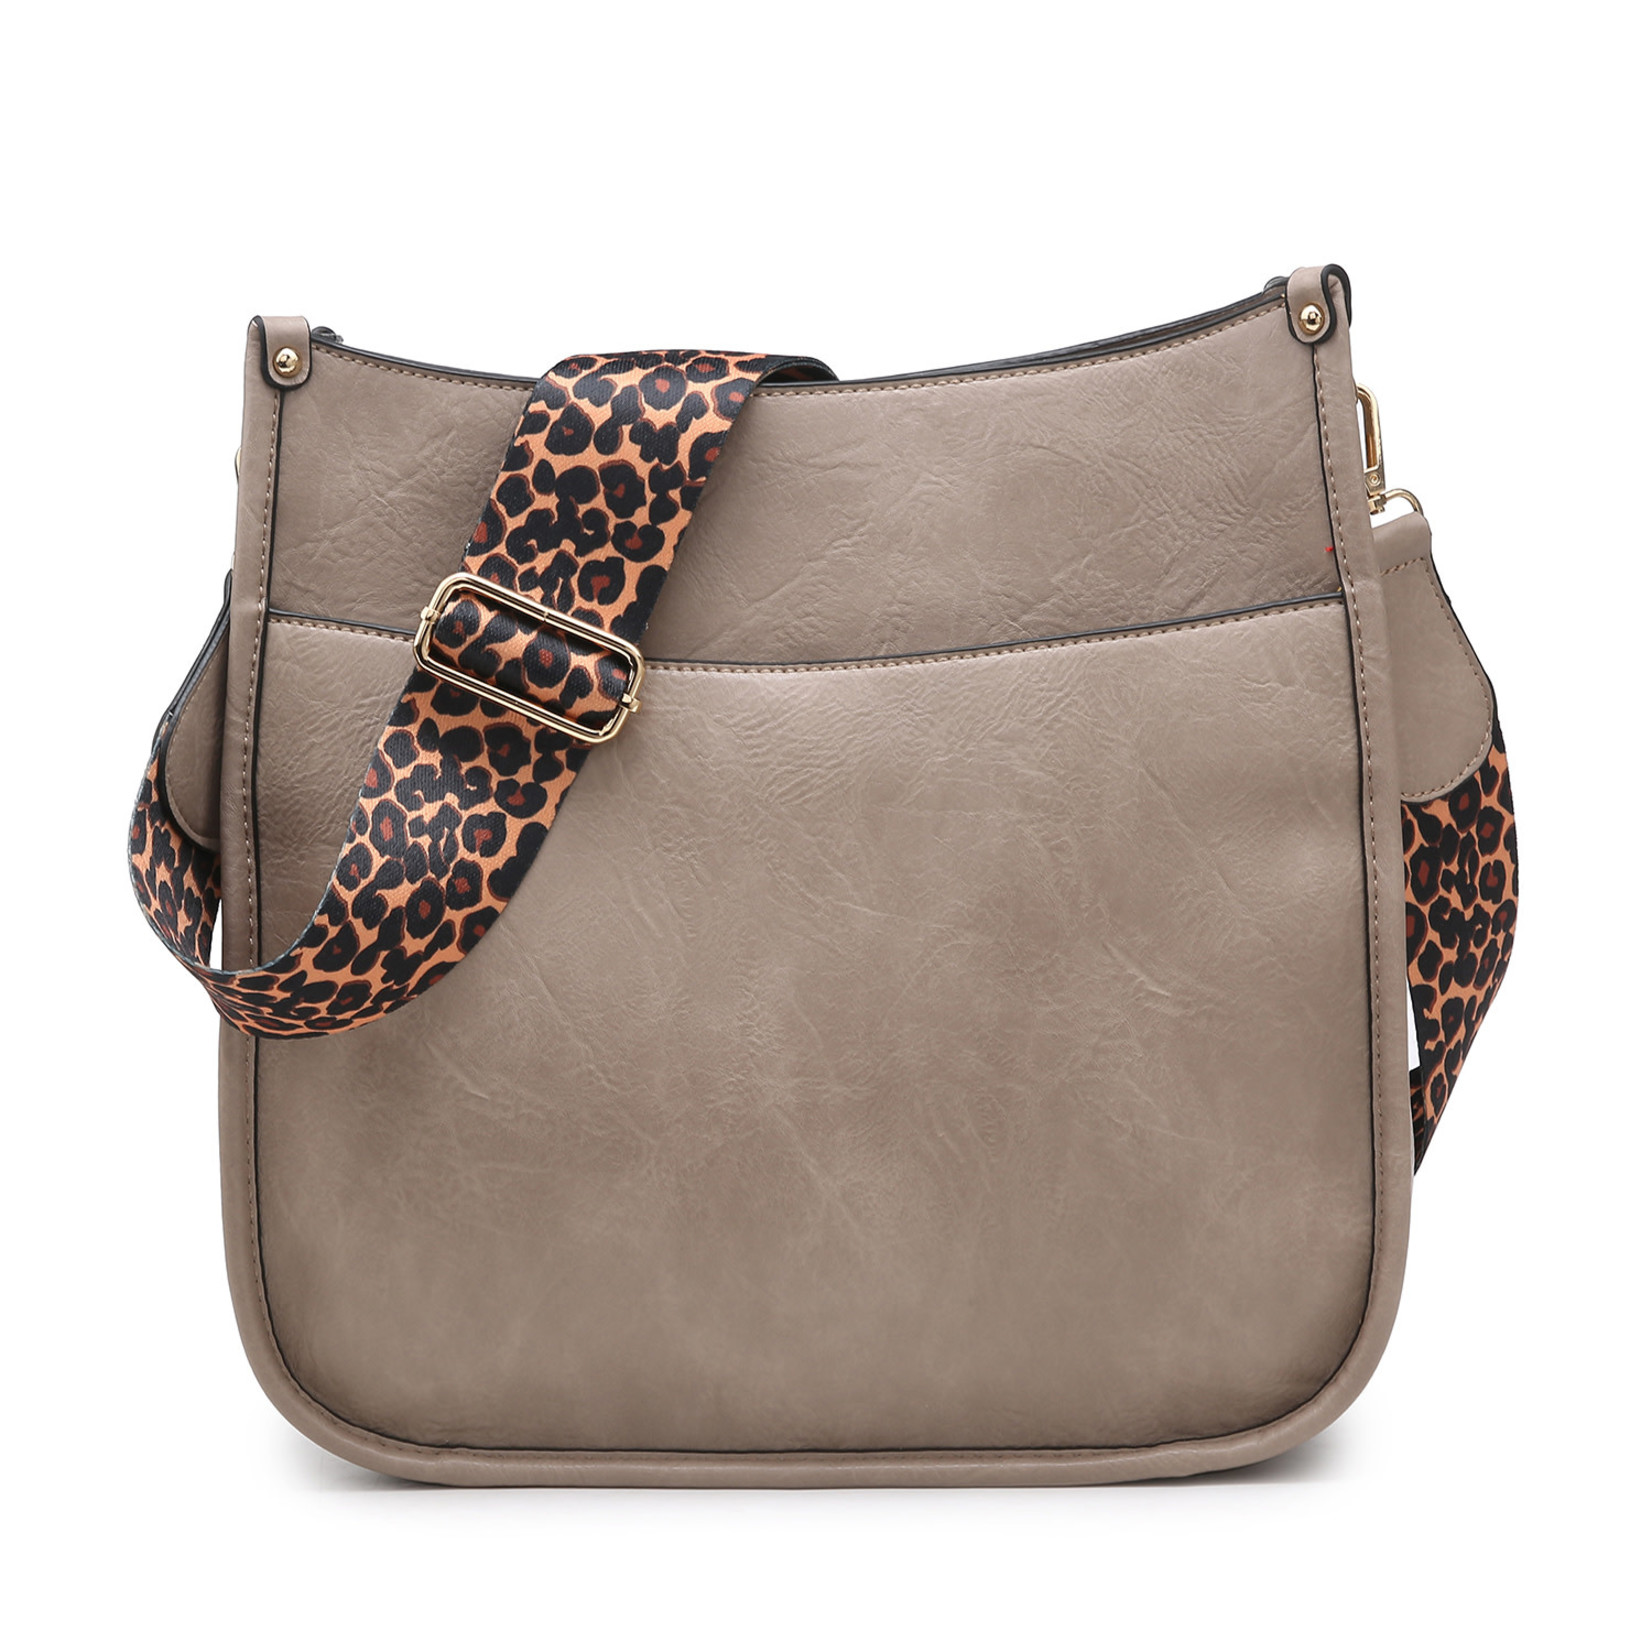 Jen & Co M1977-WGY:  Chloe Crossbody - Warm Grey